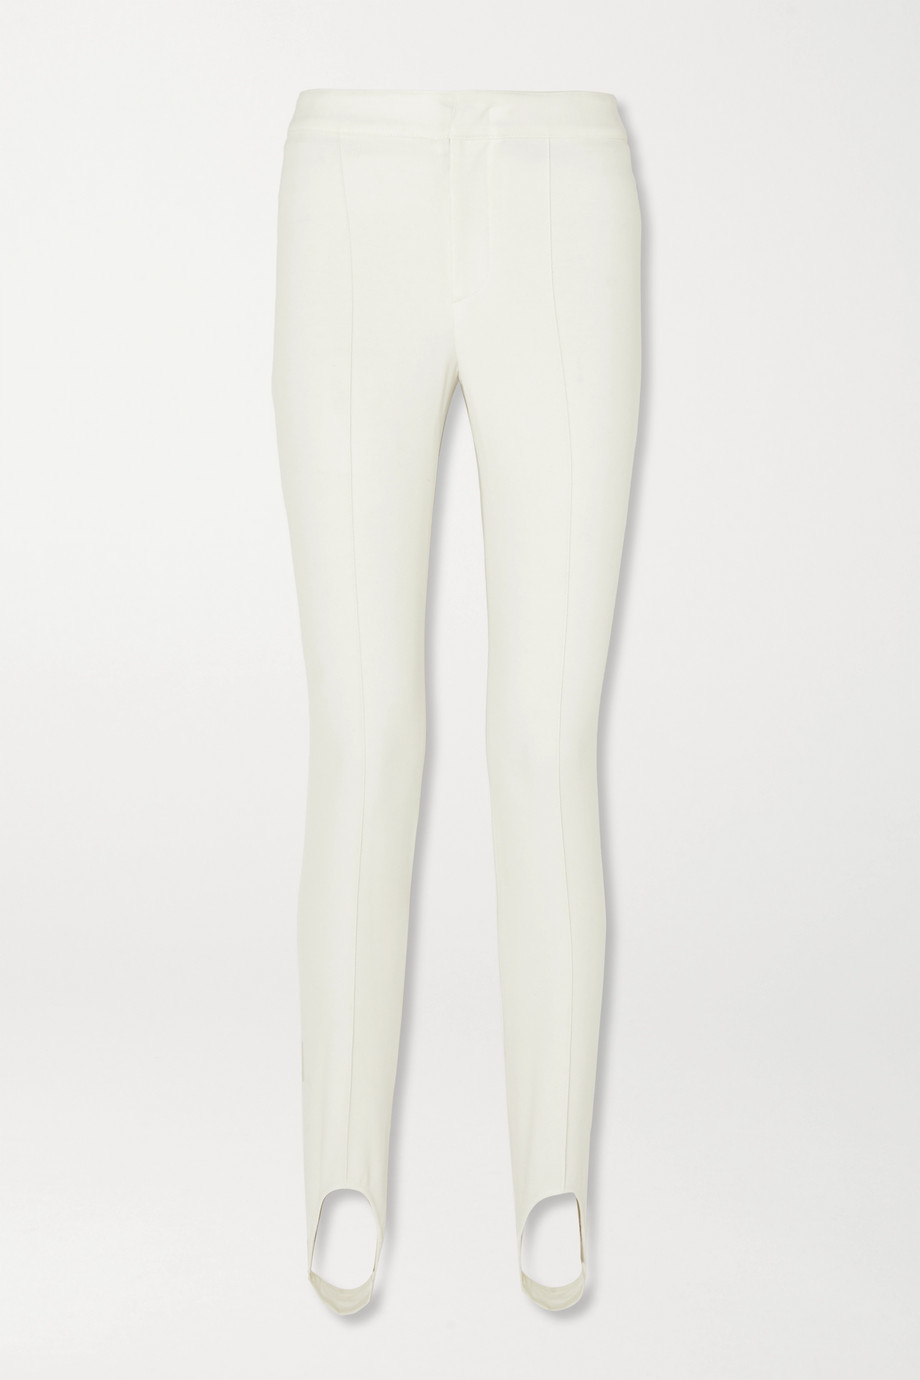 Moncler Grenoble Stretch-twill stirrup ski pants